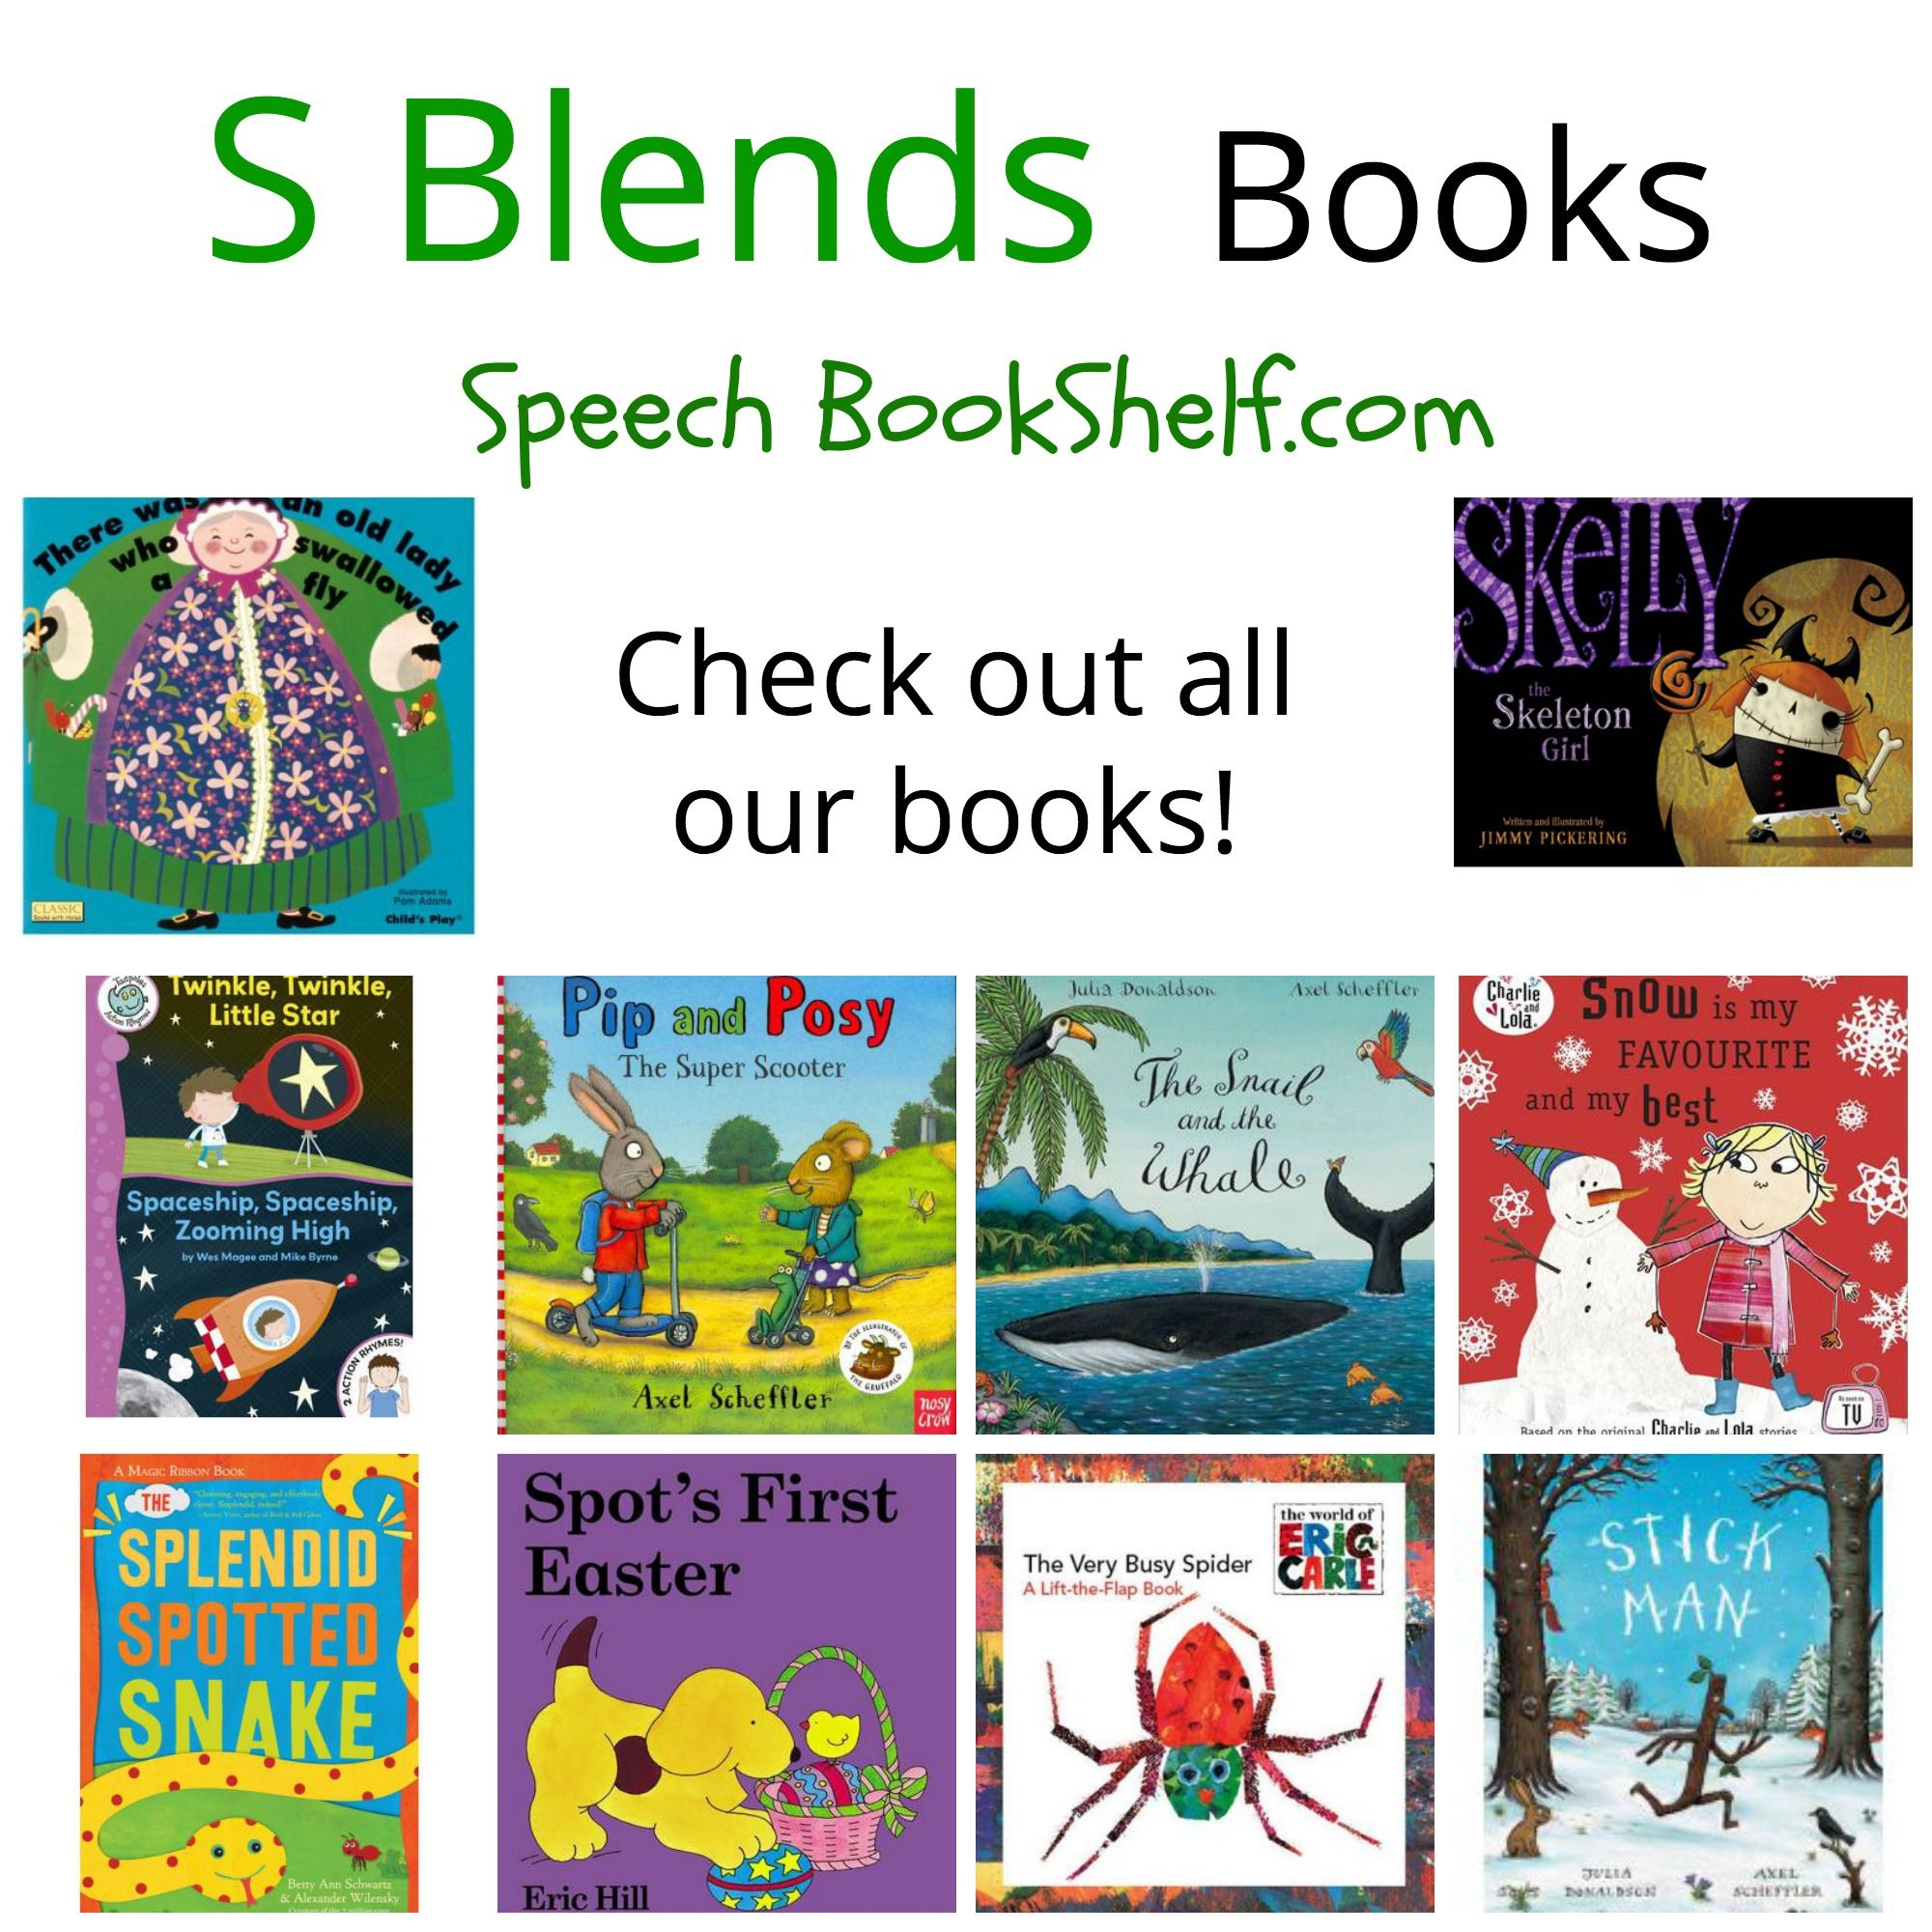 S Blends Book List Picture Books Listed For Preschoolers With Sp St Sn Targets